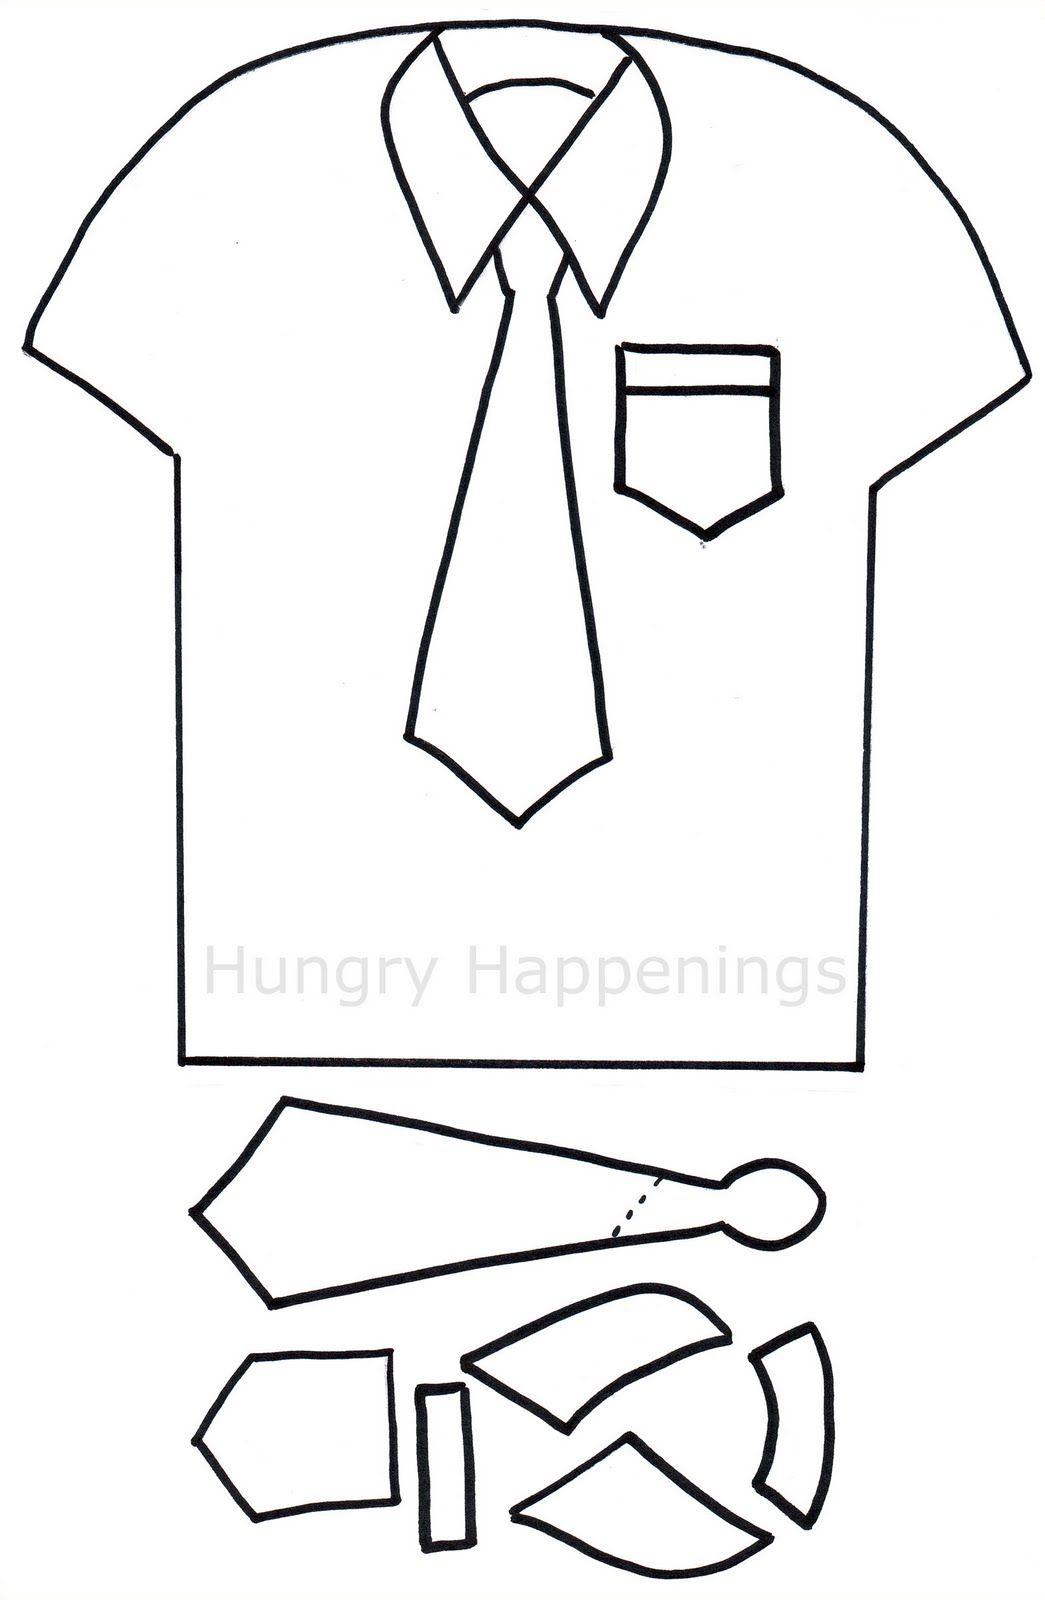 Shirt And Tie Pizza Hungry Happenings Father S Day Tie Template Father S Day Card Template Fathers Day Cards